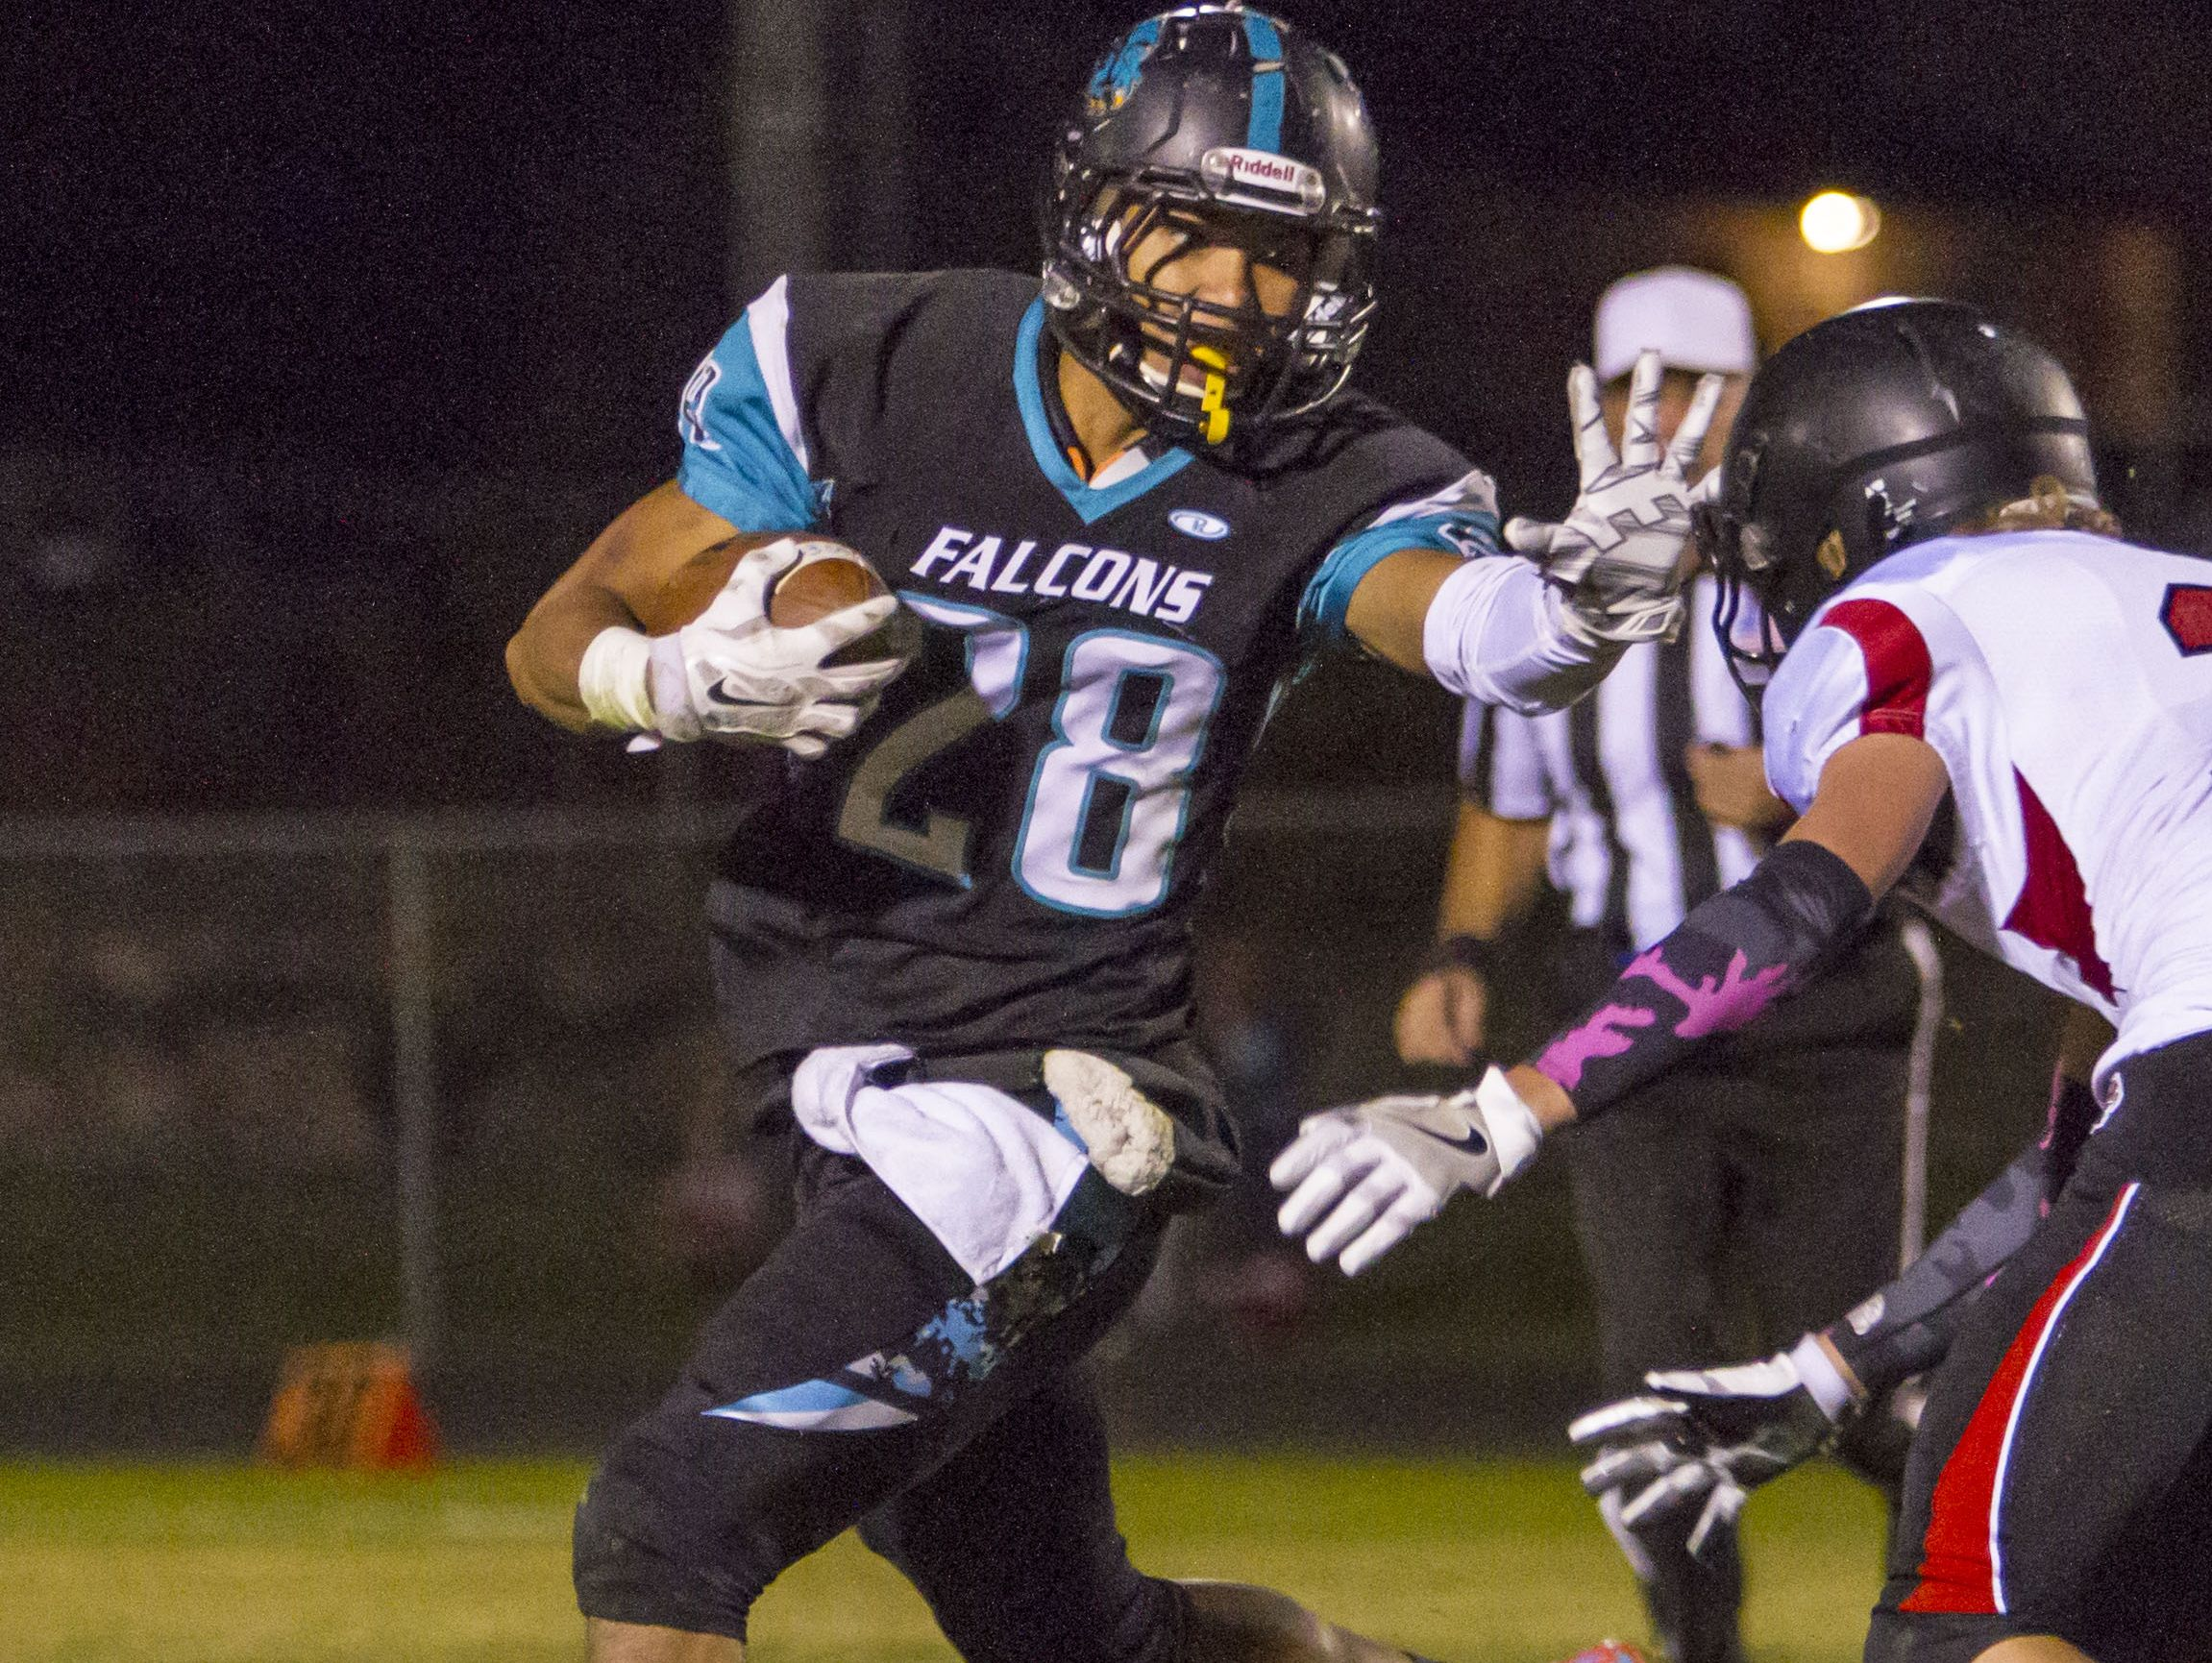 Canyon View takes on Juan Diego in the opening round of the high school playoffs on Friday.